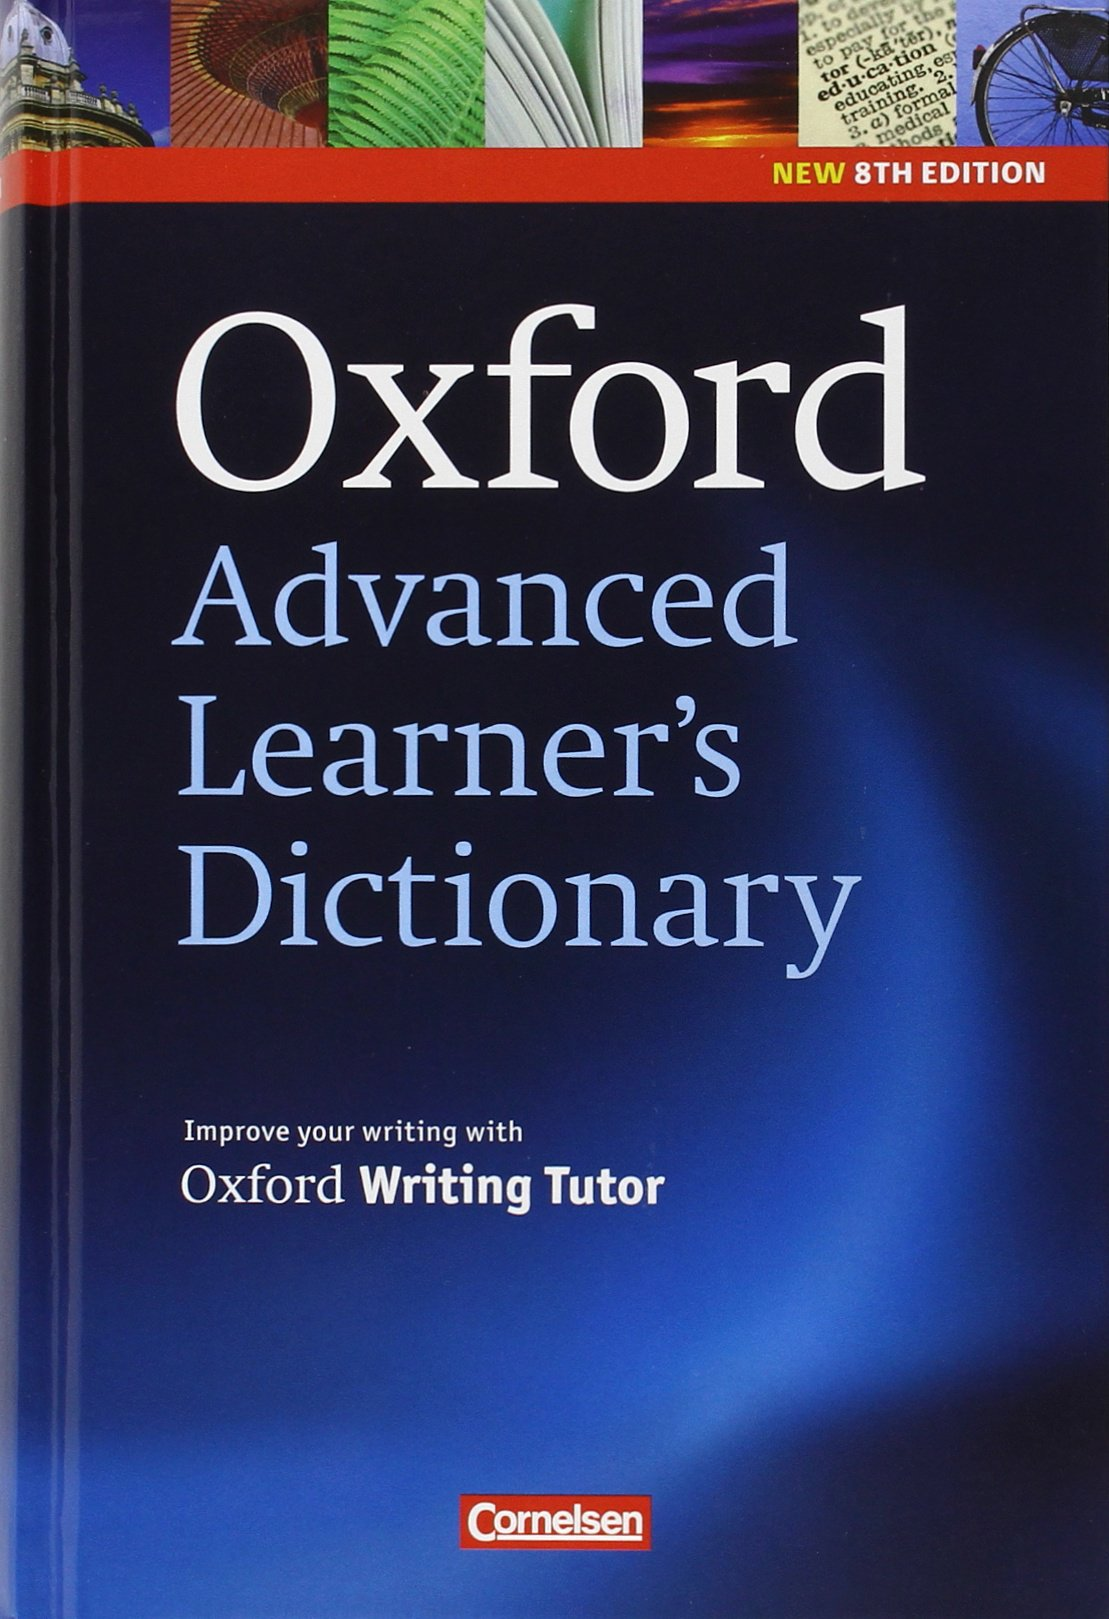 Oxford Advanced Learner's Dictionary - 8th Edition: B2-C2 - Wörterbuch mit Exam Trainer: Festeinband